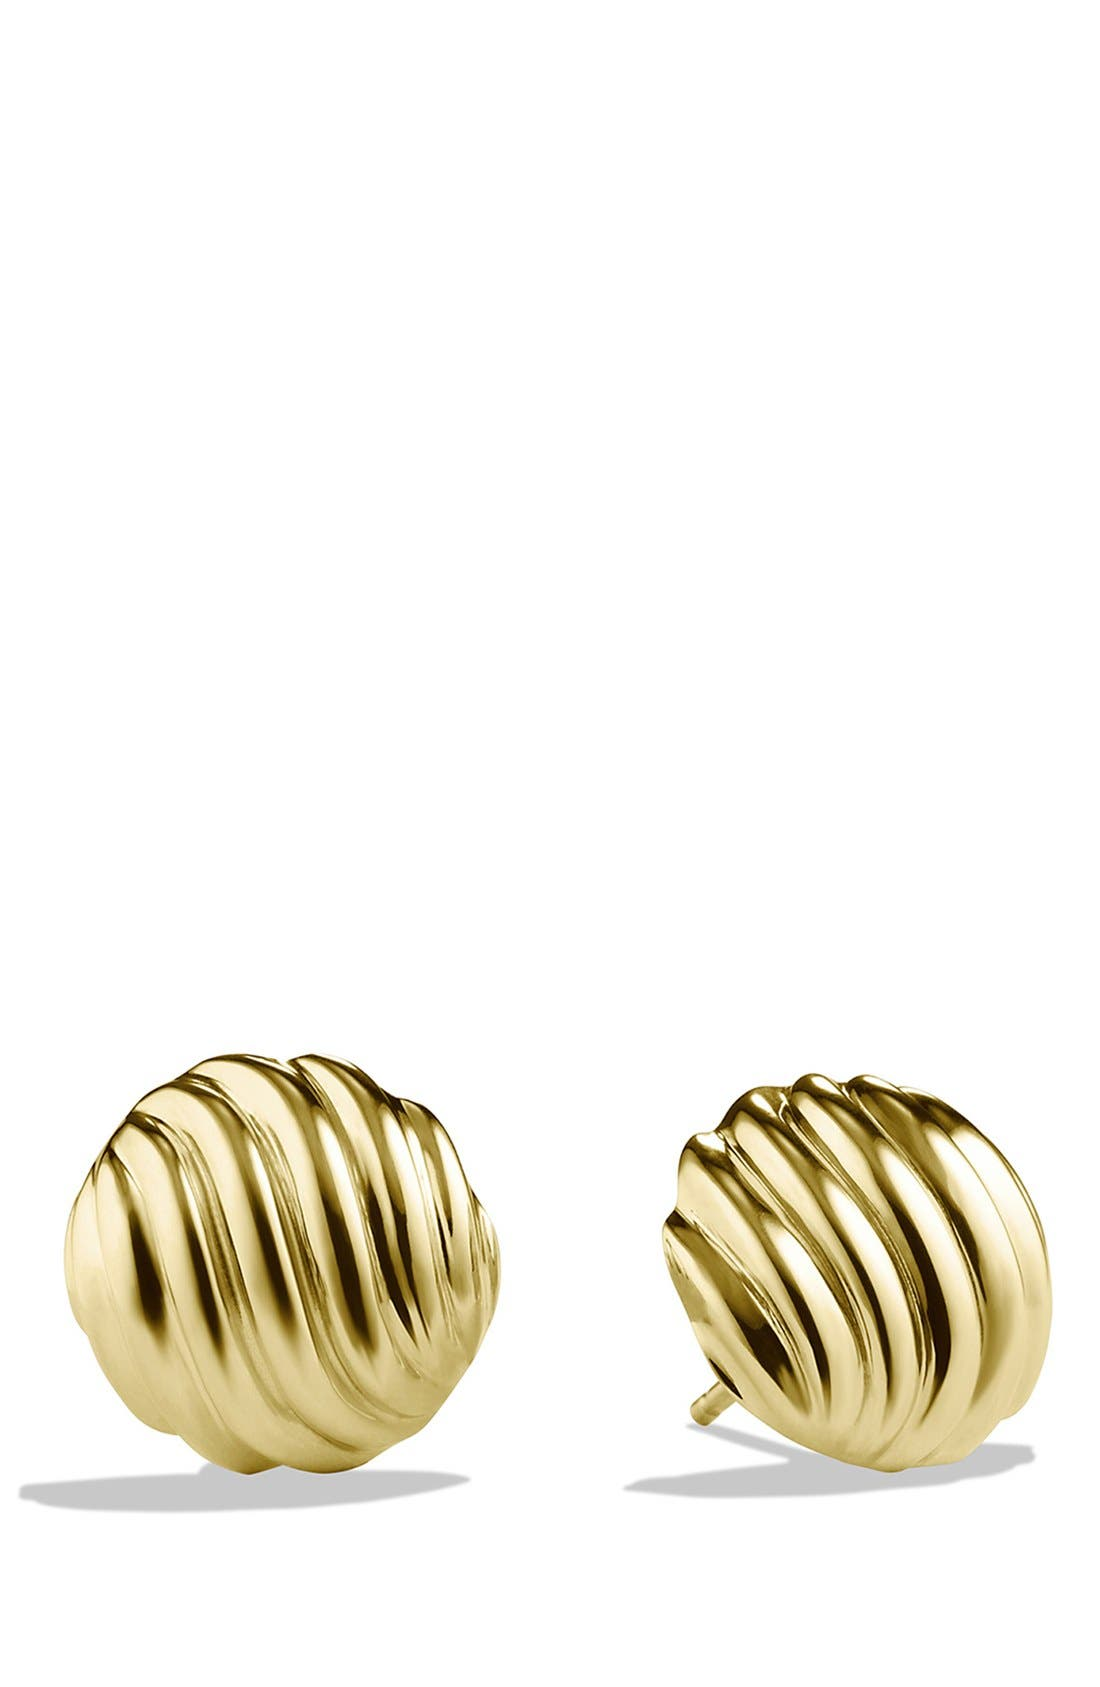 'Sculpted Cable' Earrings in Gold,                             Main thumbnail 1, color,                             Gold